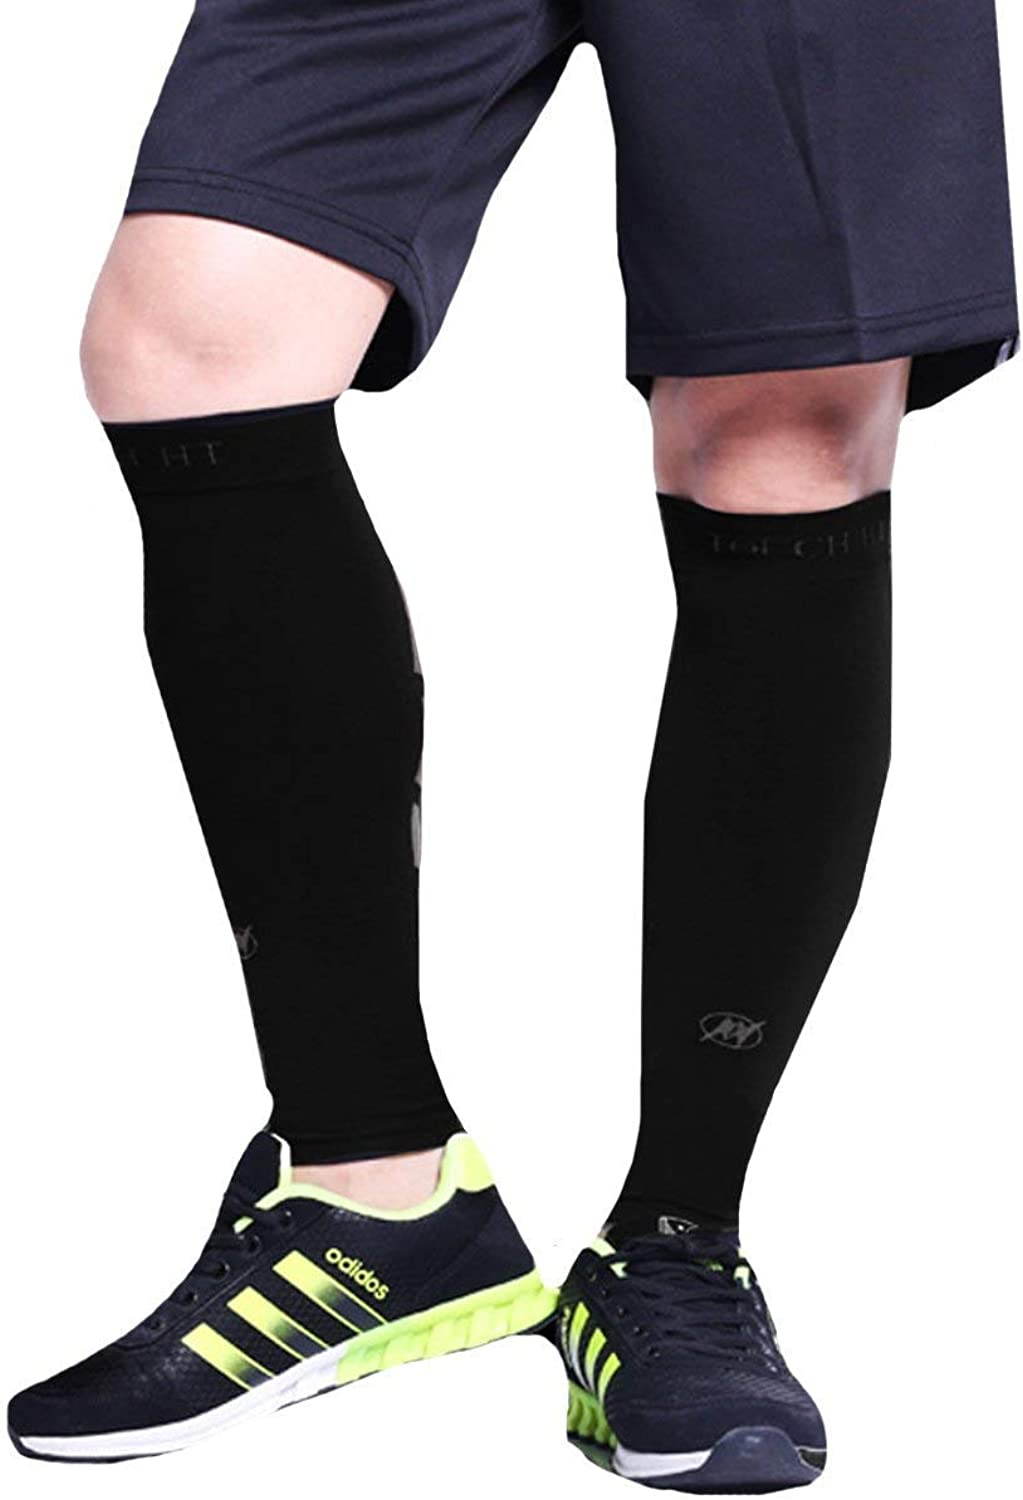 Rebecca Men Women Calf Compression Sleeve Socks Leg Performance Support Calf Pain Relief for Sports, Running, Cycling (One Count Black)